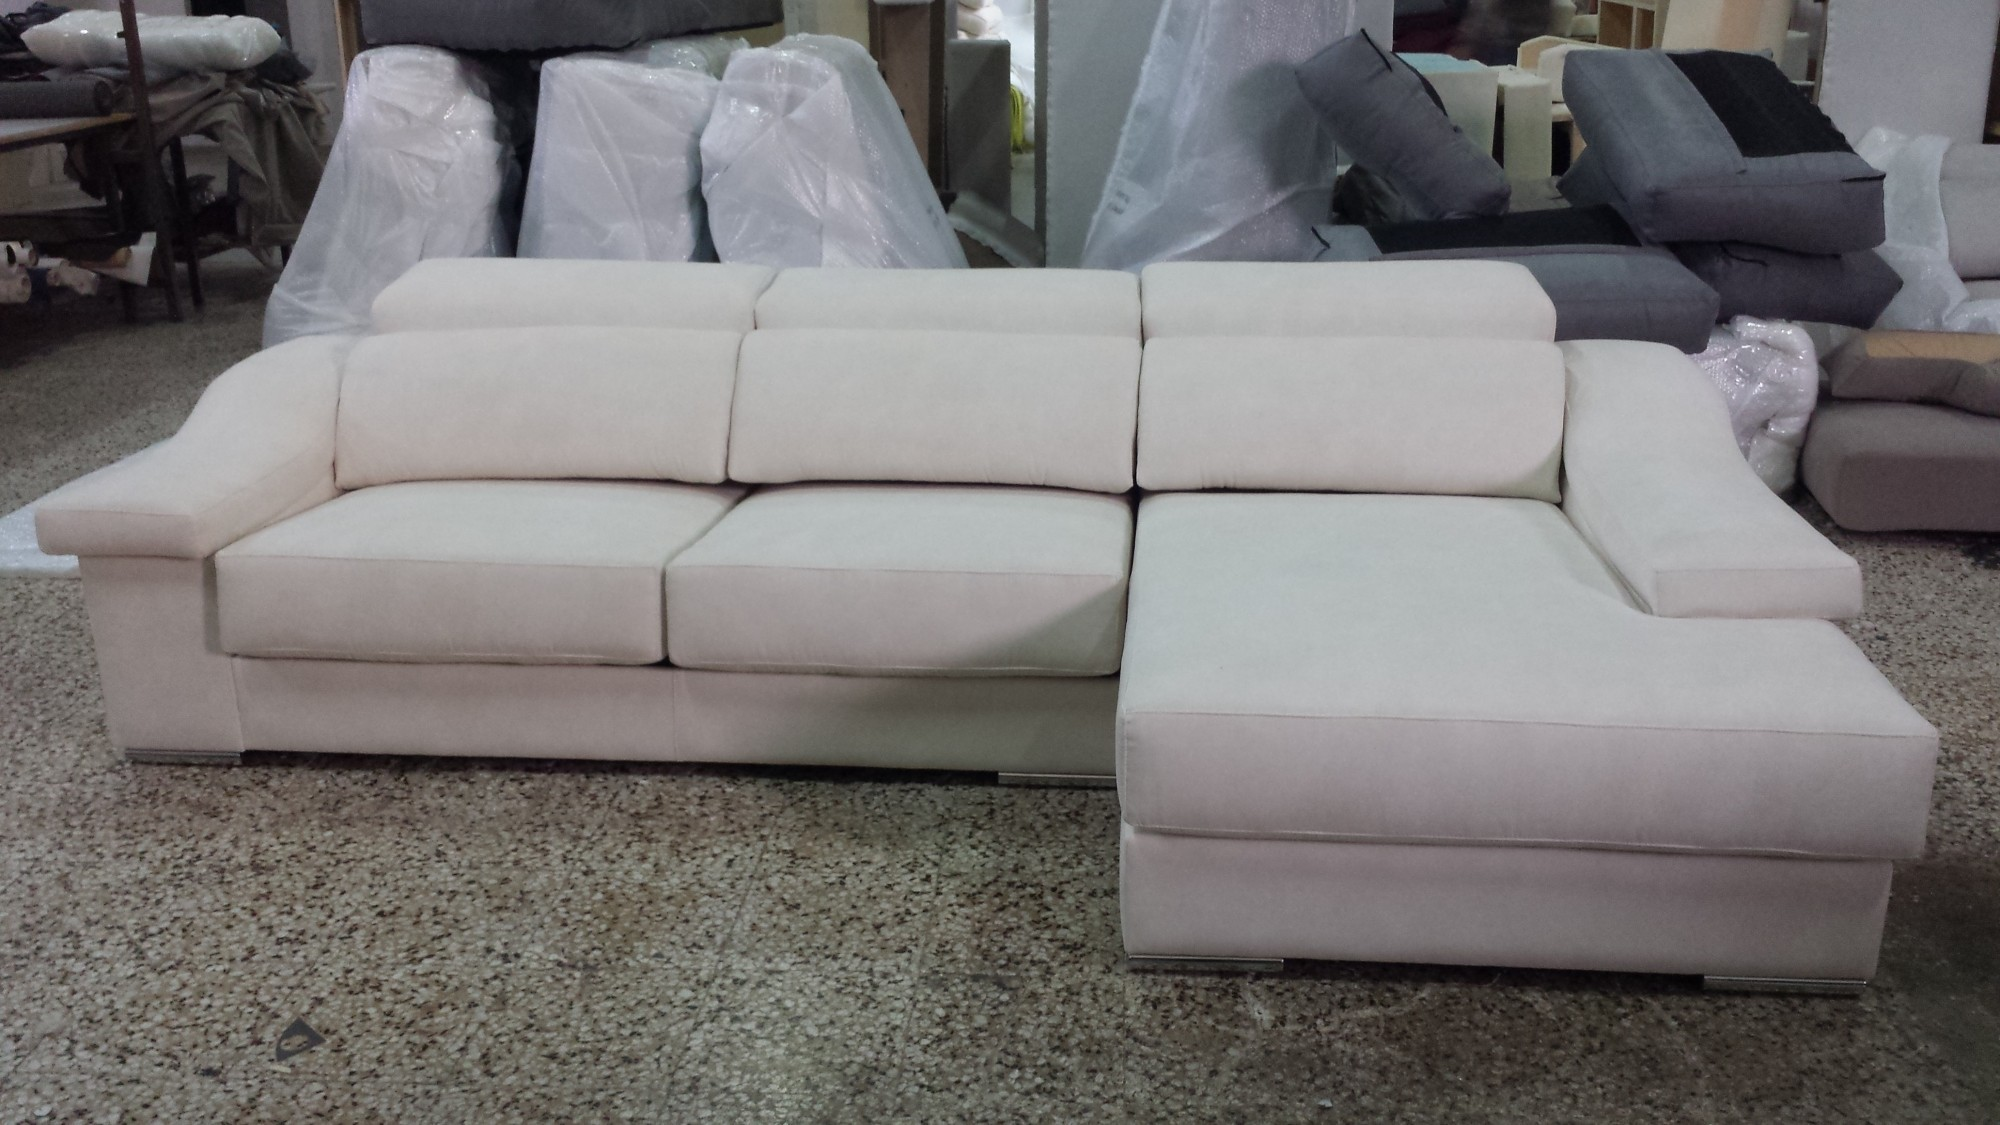 Fabricas sofas madrid baratos for Fabrica sofas madrid